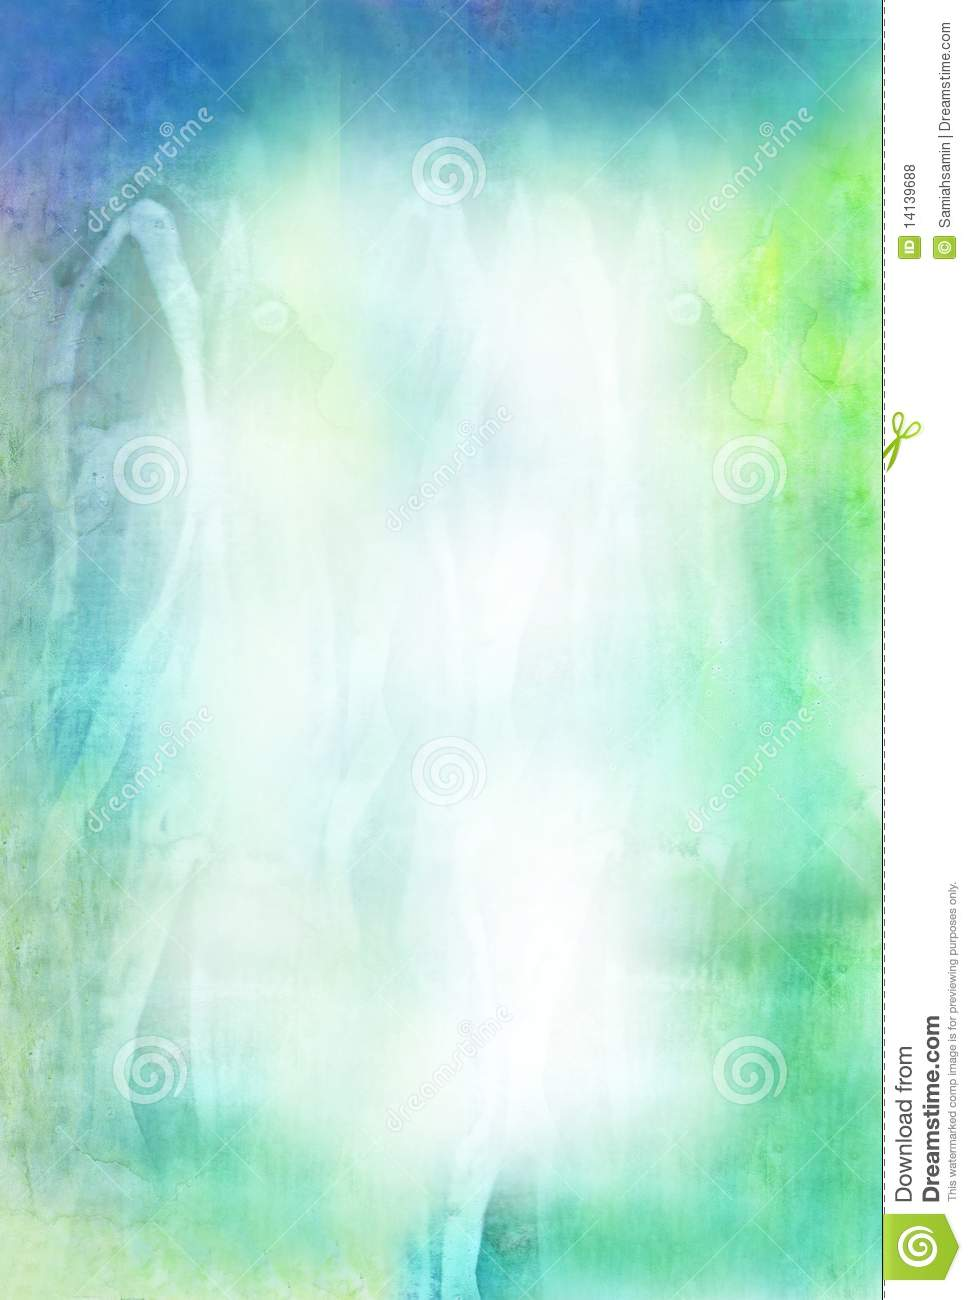 Beautiful watercolor background- Great for textures and backgrounds ...